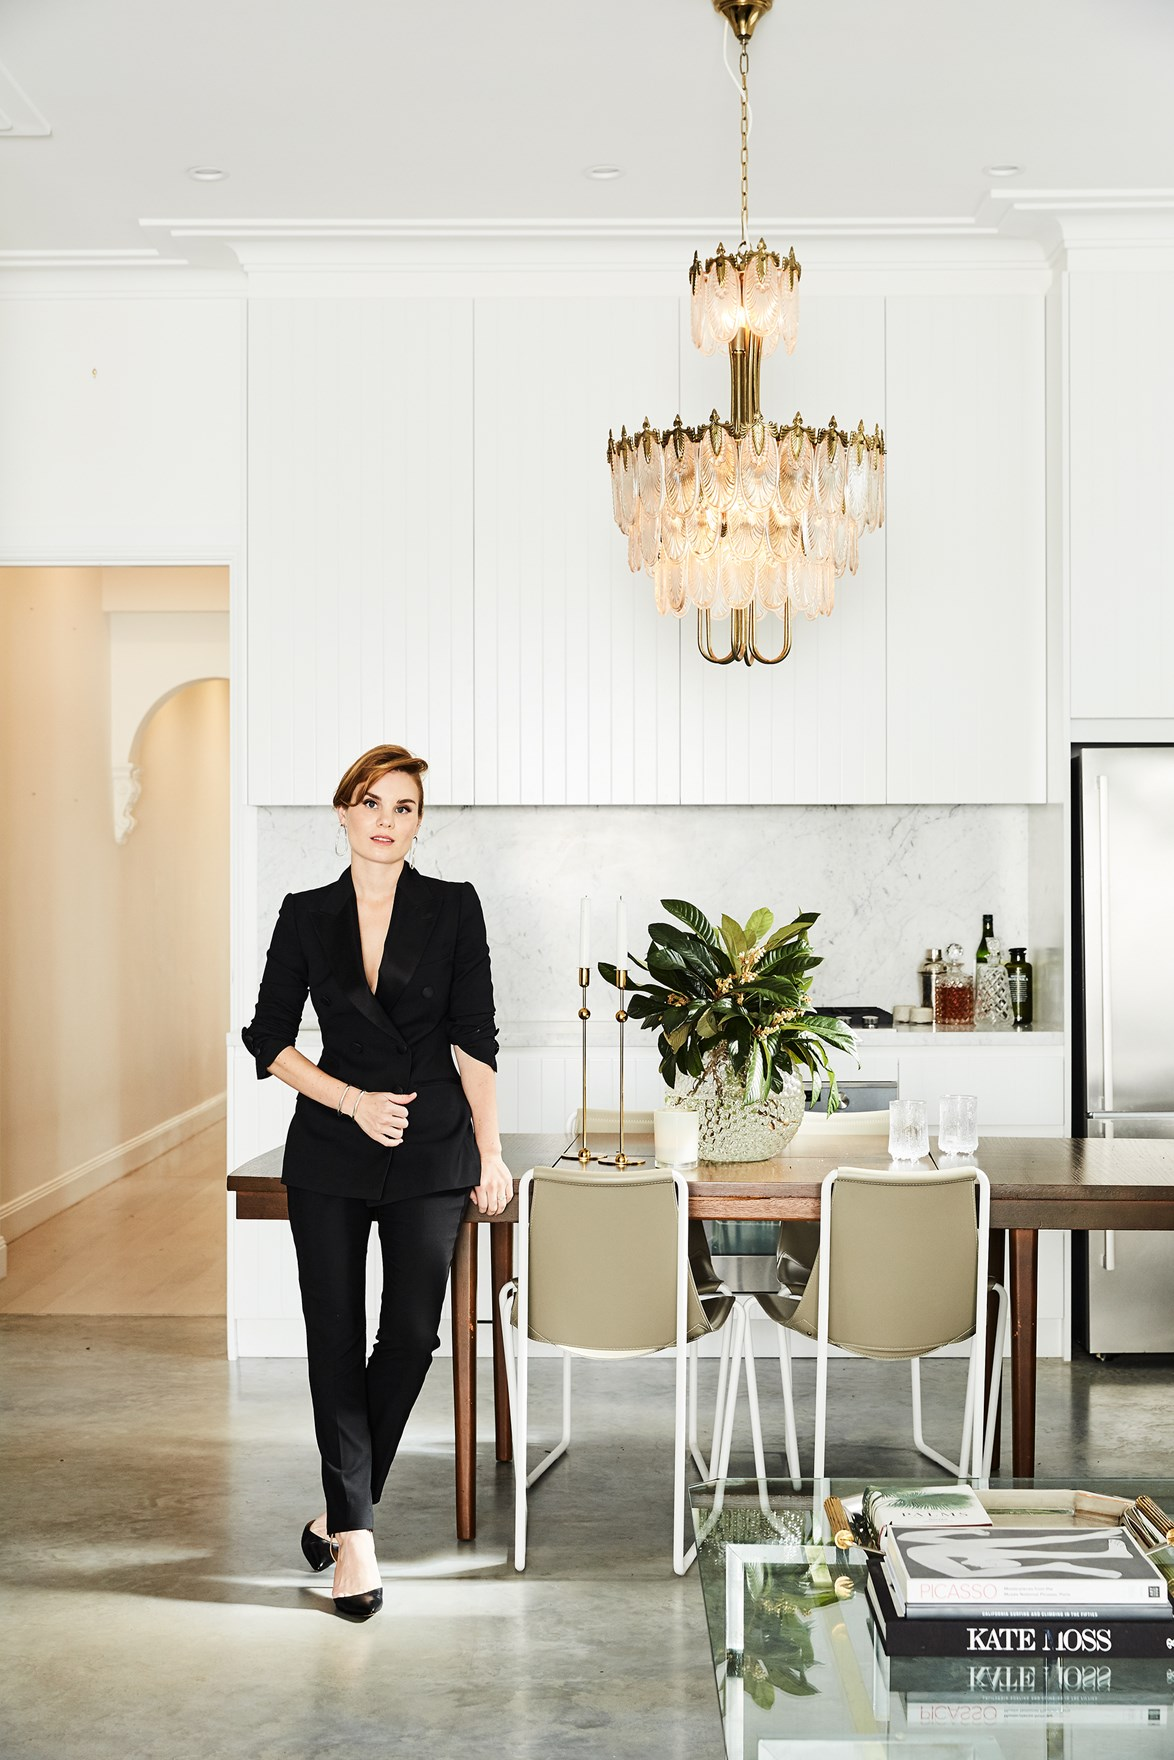 """As a fashion stylist, it's only natural that Tanya Levak has an eye for decorating, too. Her [chic inner-city abode](https://www.homestolove.com.au/a-fashionable-cottage-renovation-in-sydney-4053